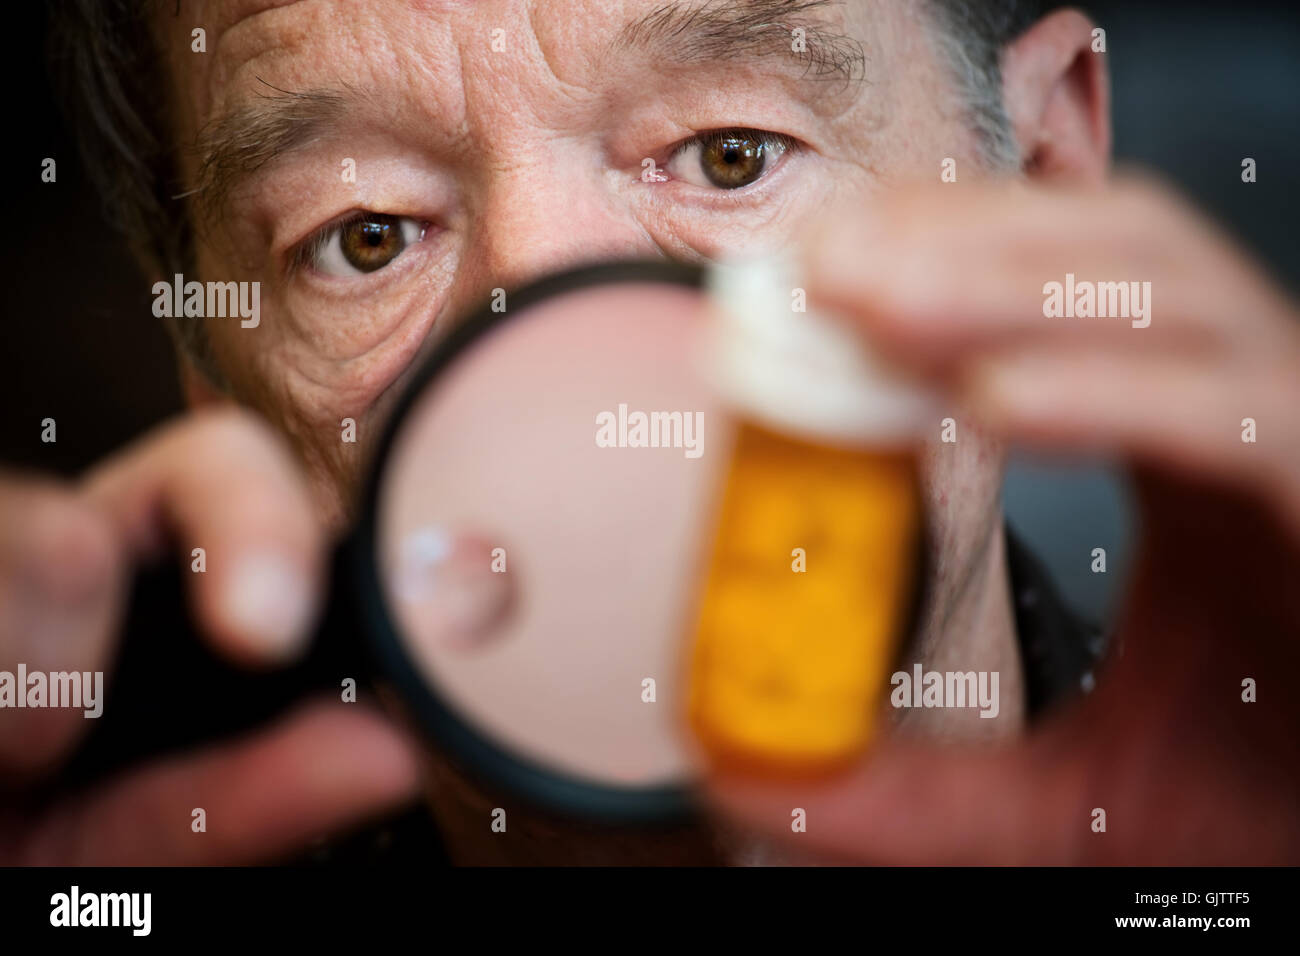 bottle magnify means - Stock Image